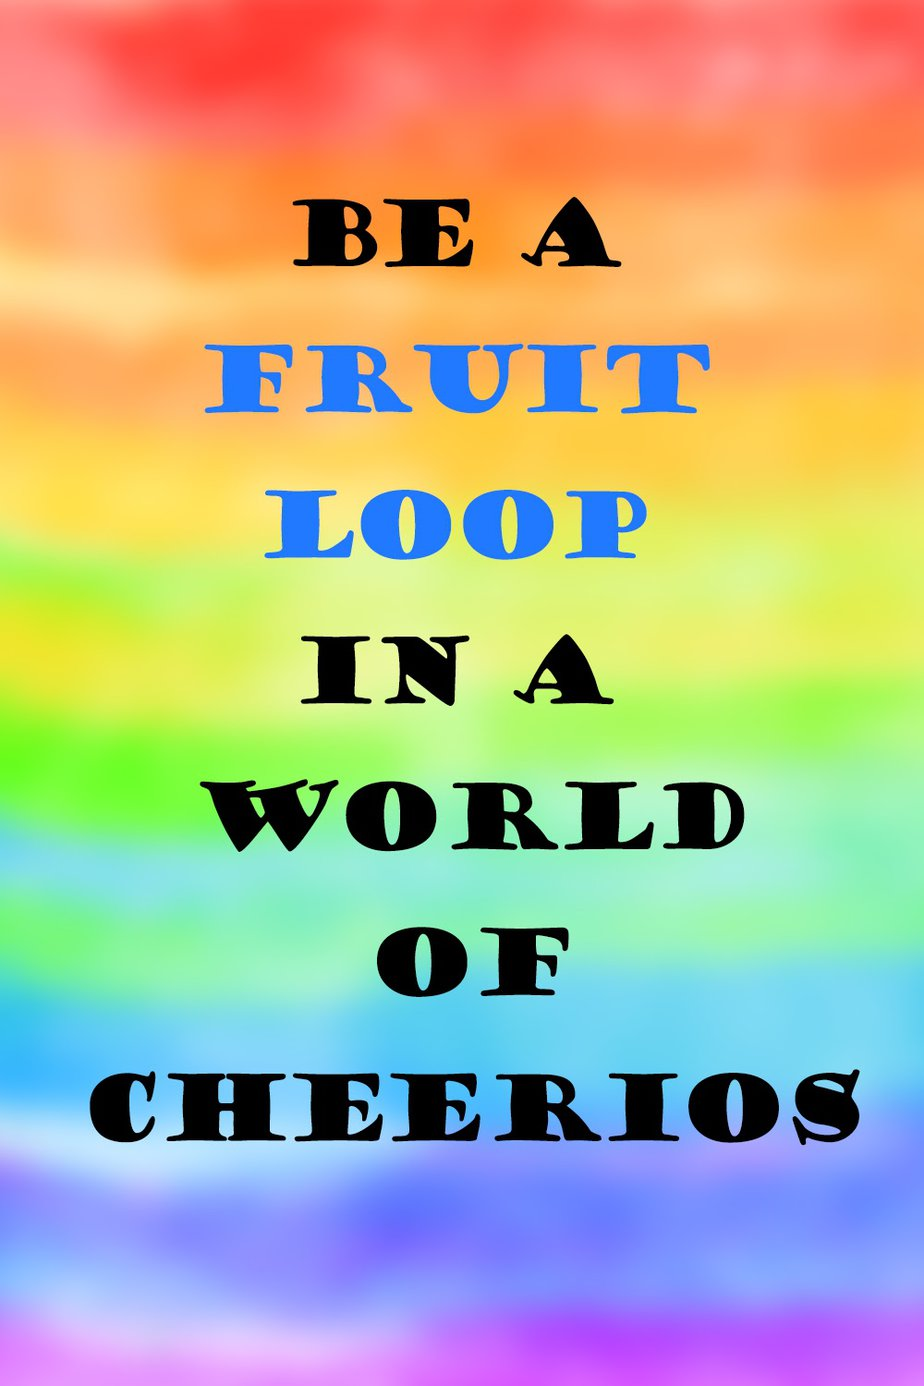 What does it mean to you to be a fruit loop in a world of Cheerios? Find ways to be a leader and stand out from the crowd. Quotes About Fitting in and Standing Out | Stand Out From The Crowd | Be The One to Stand Out in The Crowd | Be Different Quotes | Quotes About Being Different | Quotes About Standing Alone | Why Fit in